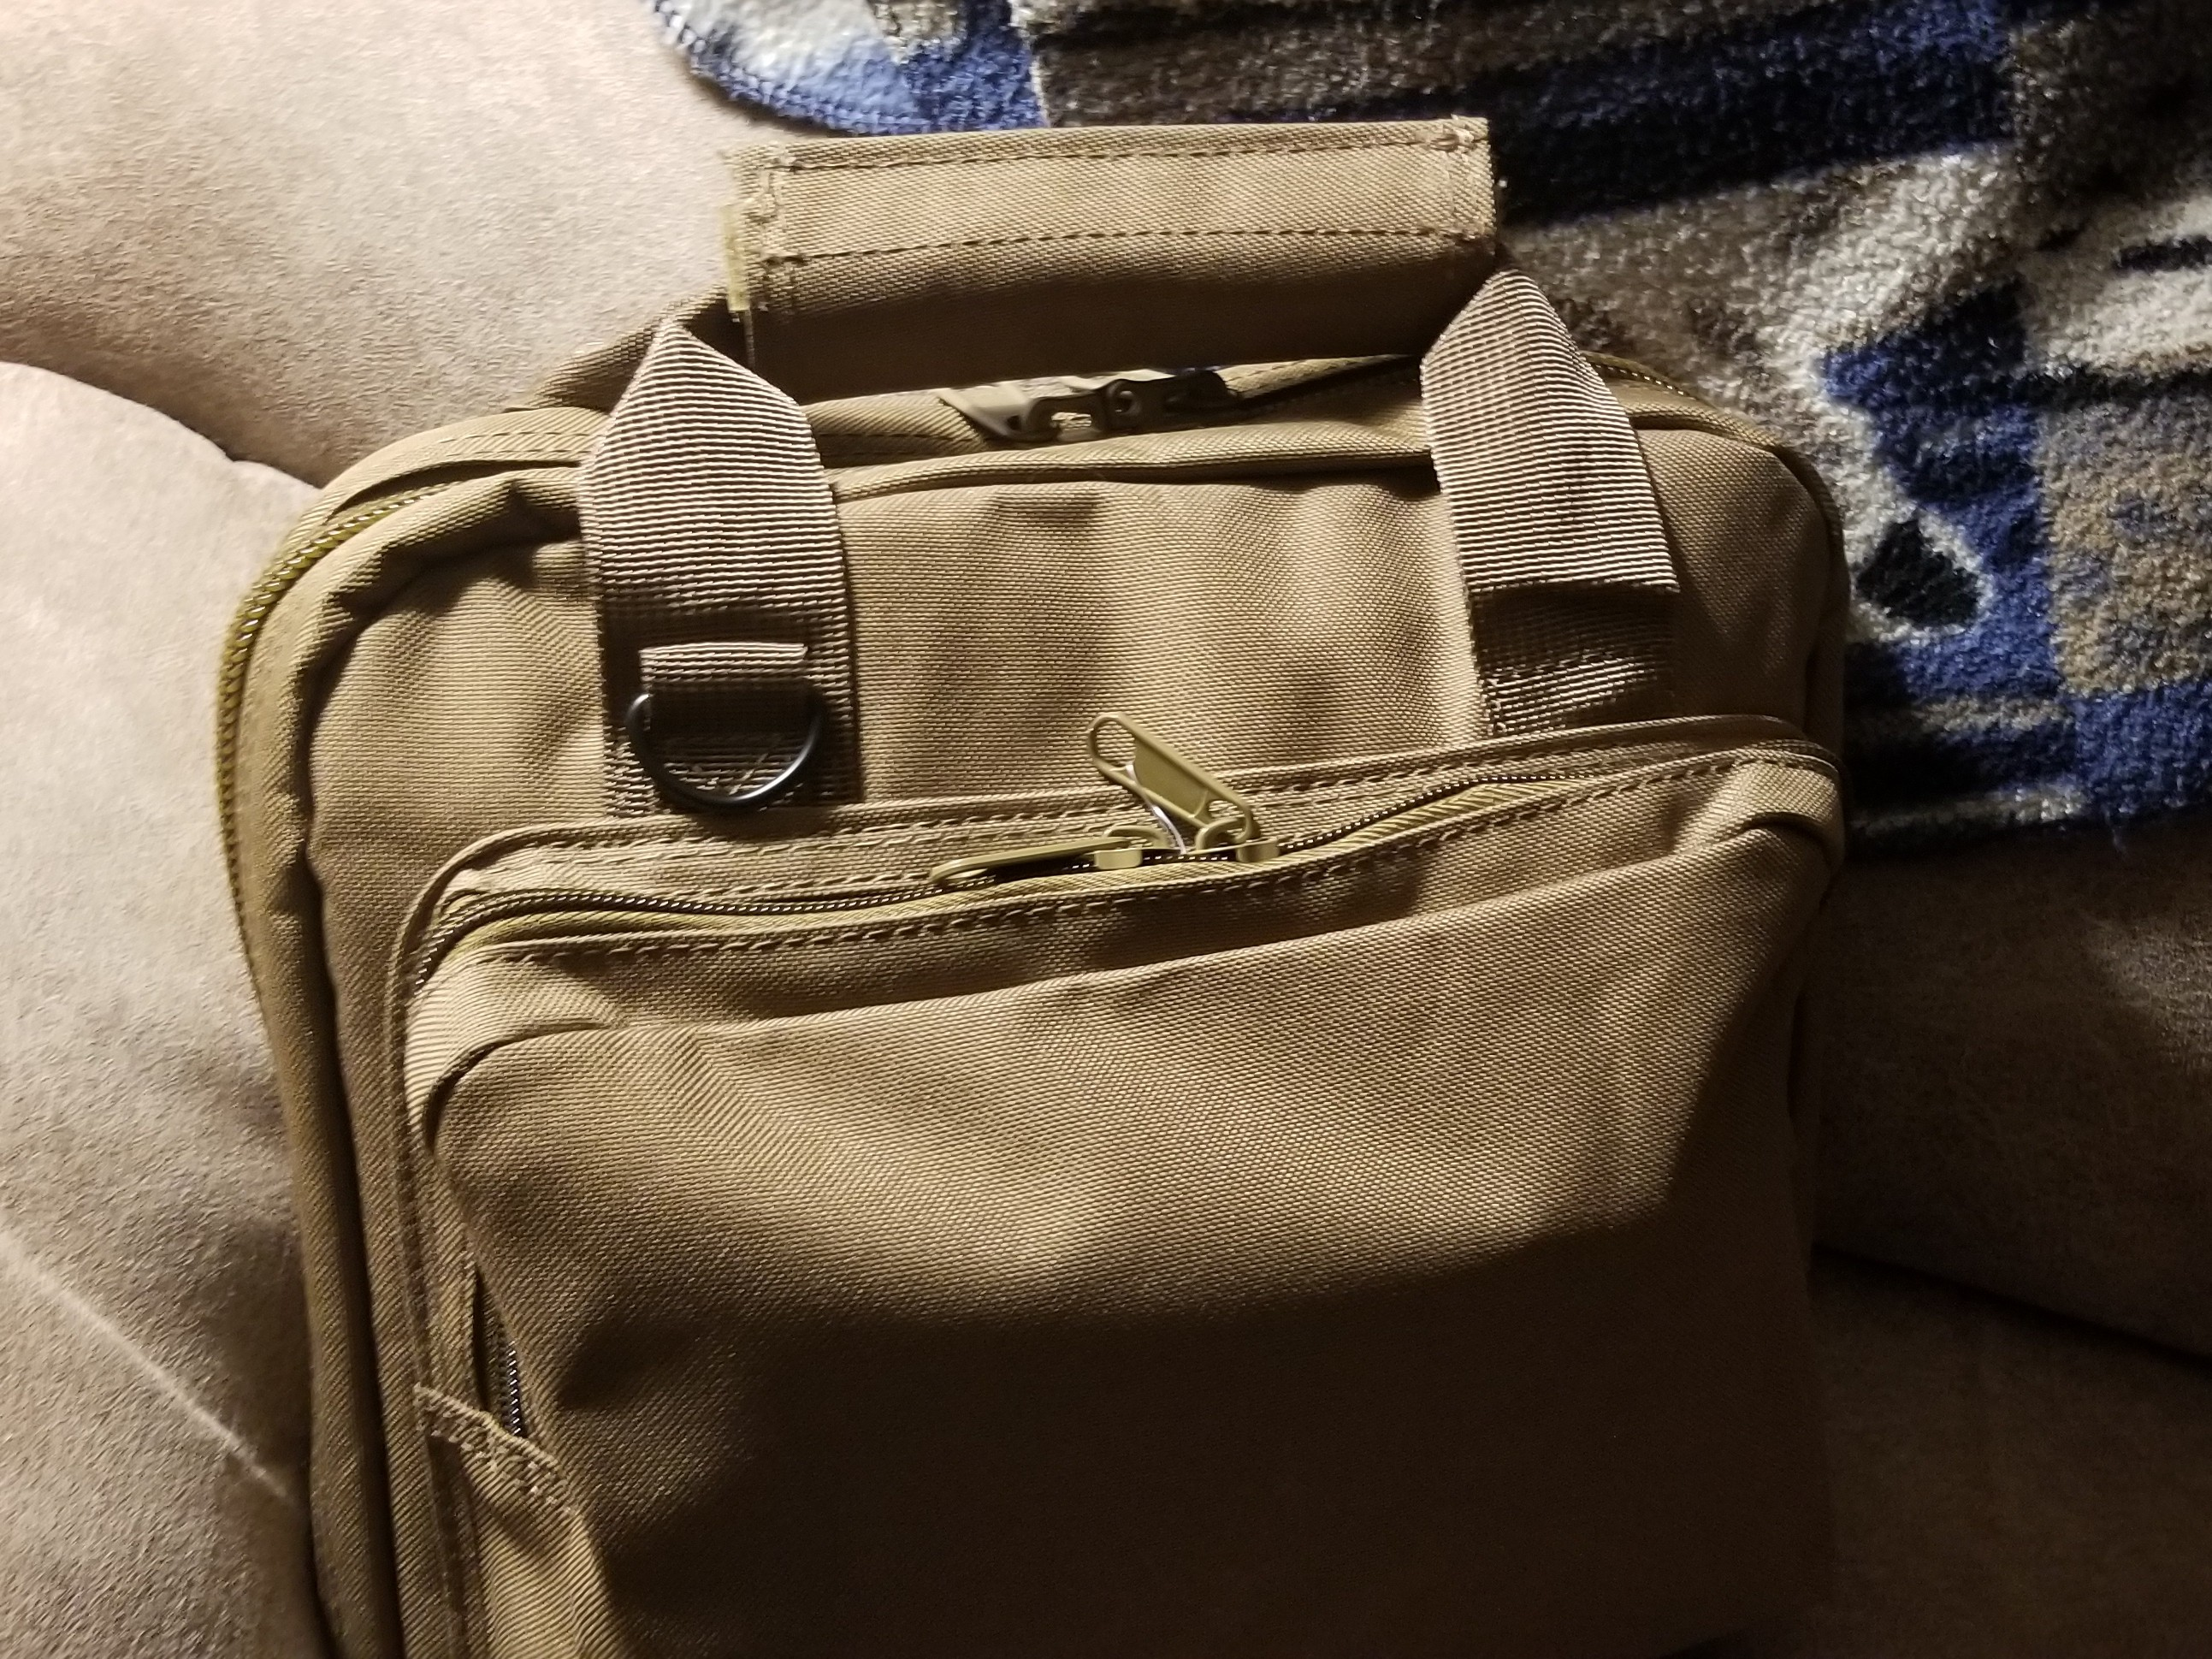 A New Gun Bag